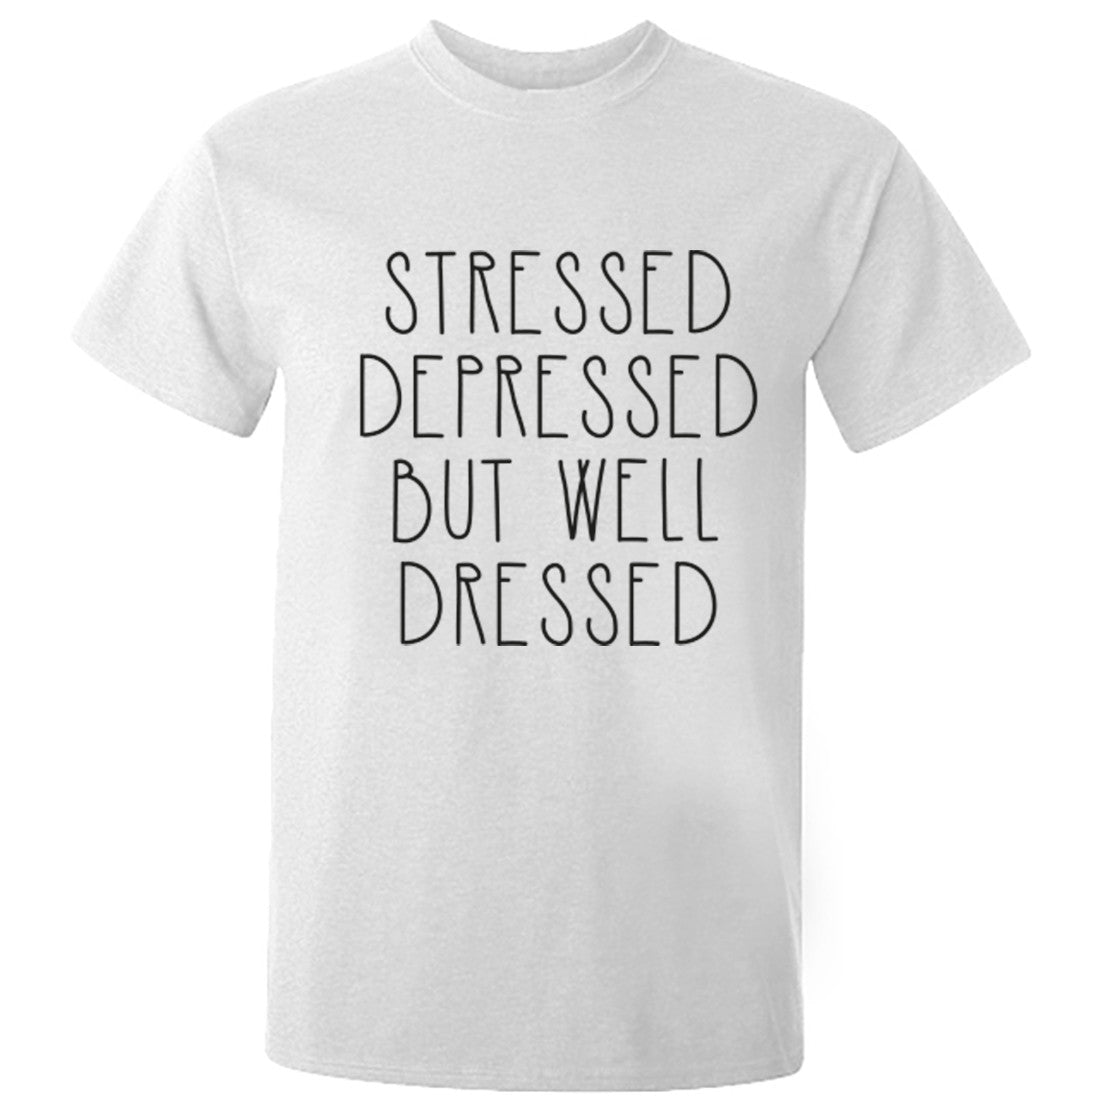 Stressed Depressed But Well Dressed Unisex Fit T-Shirt K0465